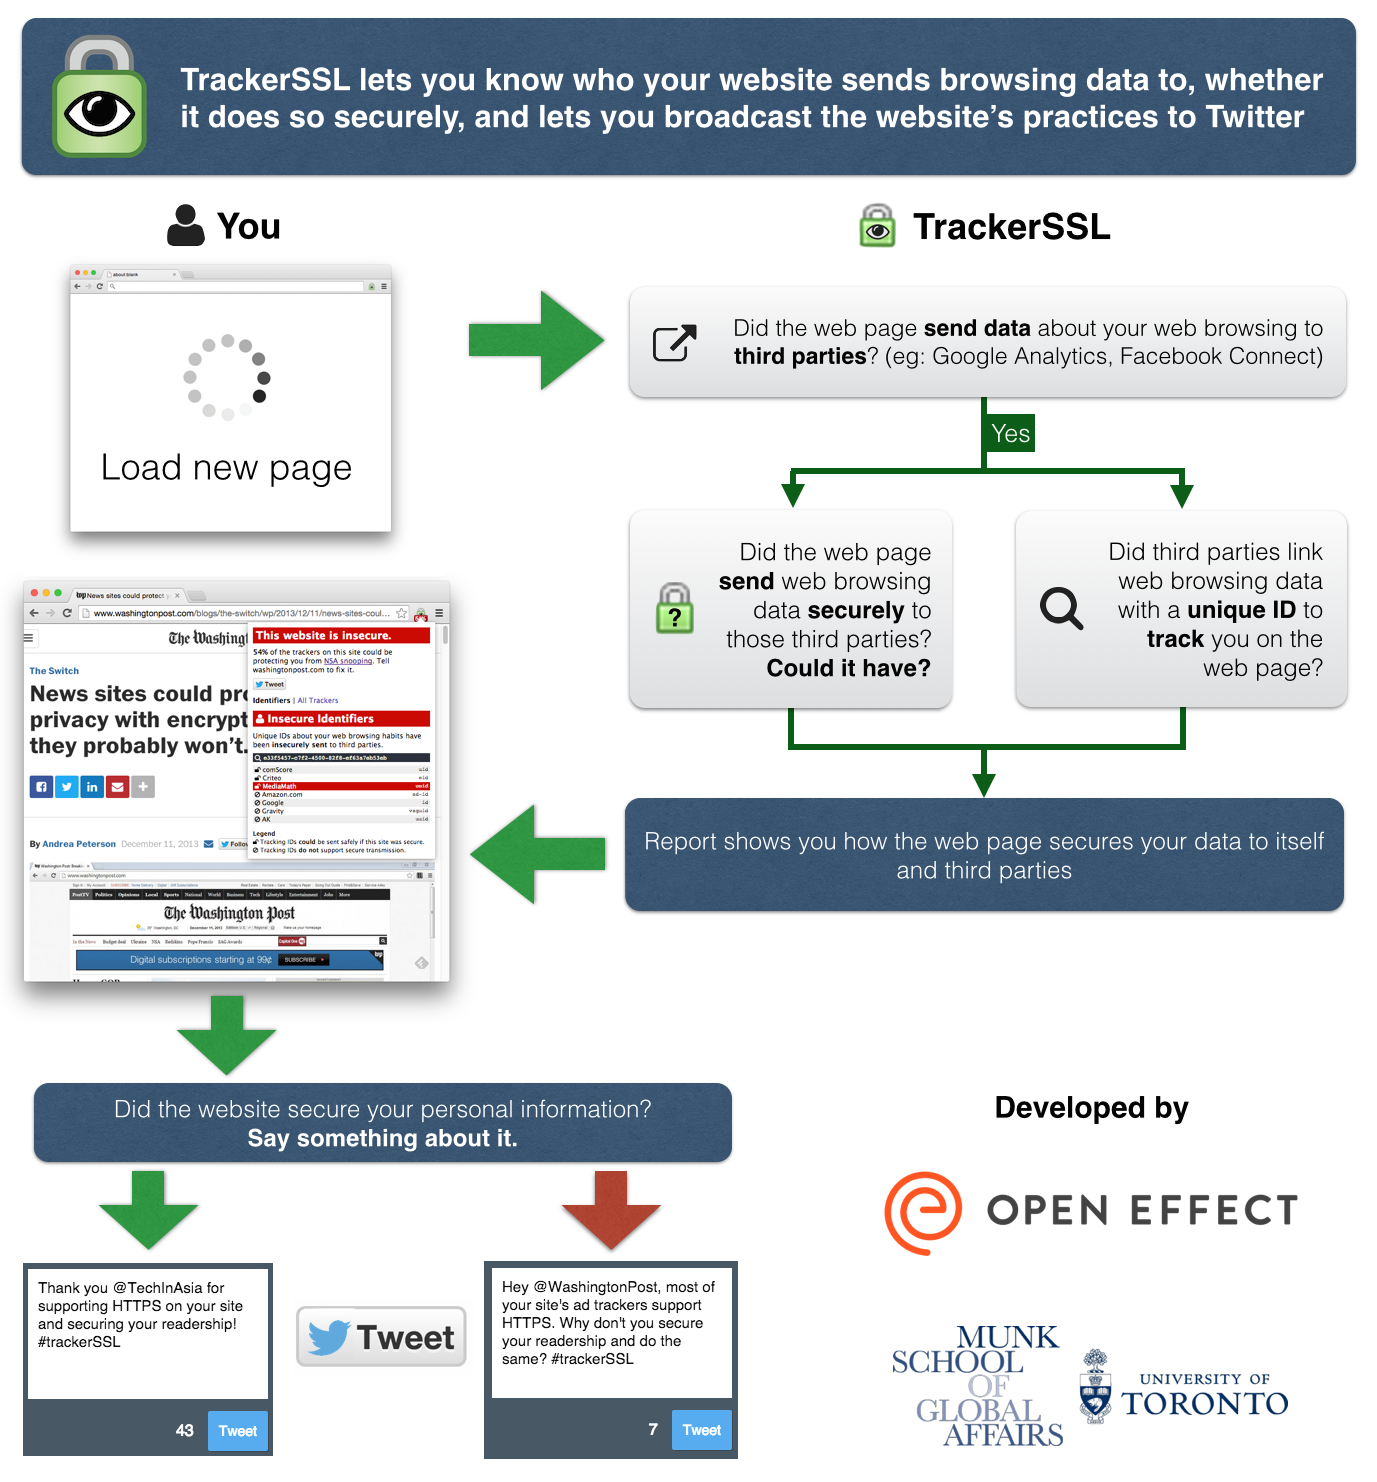 TrackerSSL-infographic-1